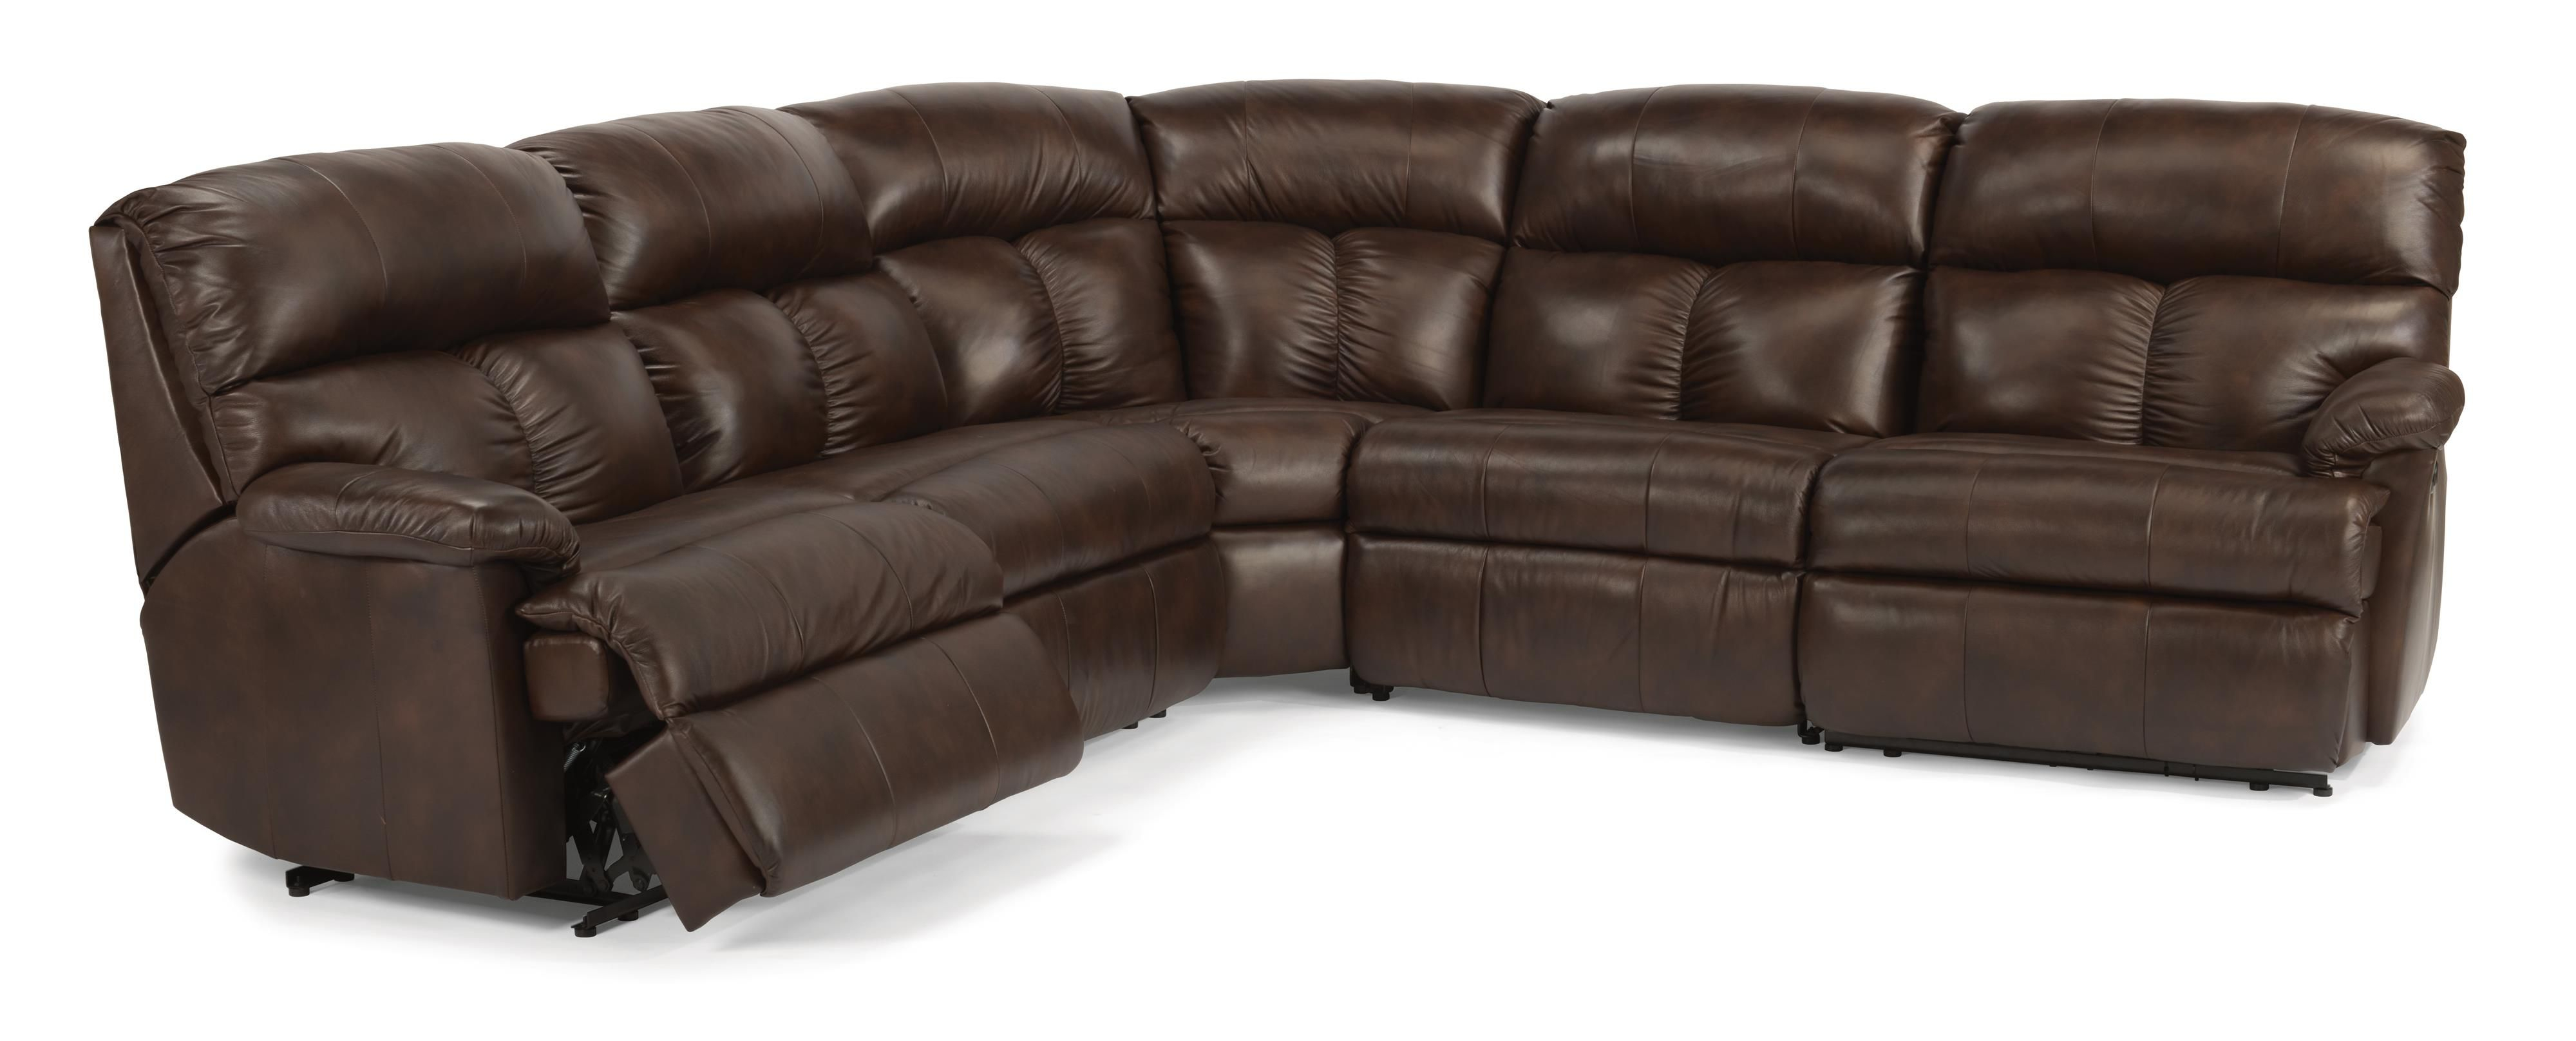 Pincindy Christian On For My House | Pinterest | Reclining With Regard To Patterson Ii Arm Sofa Chairs (Image 13 of 25)